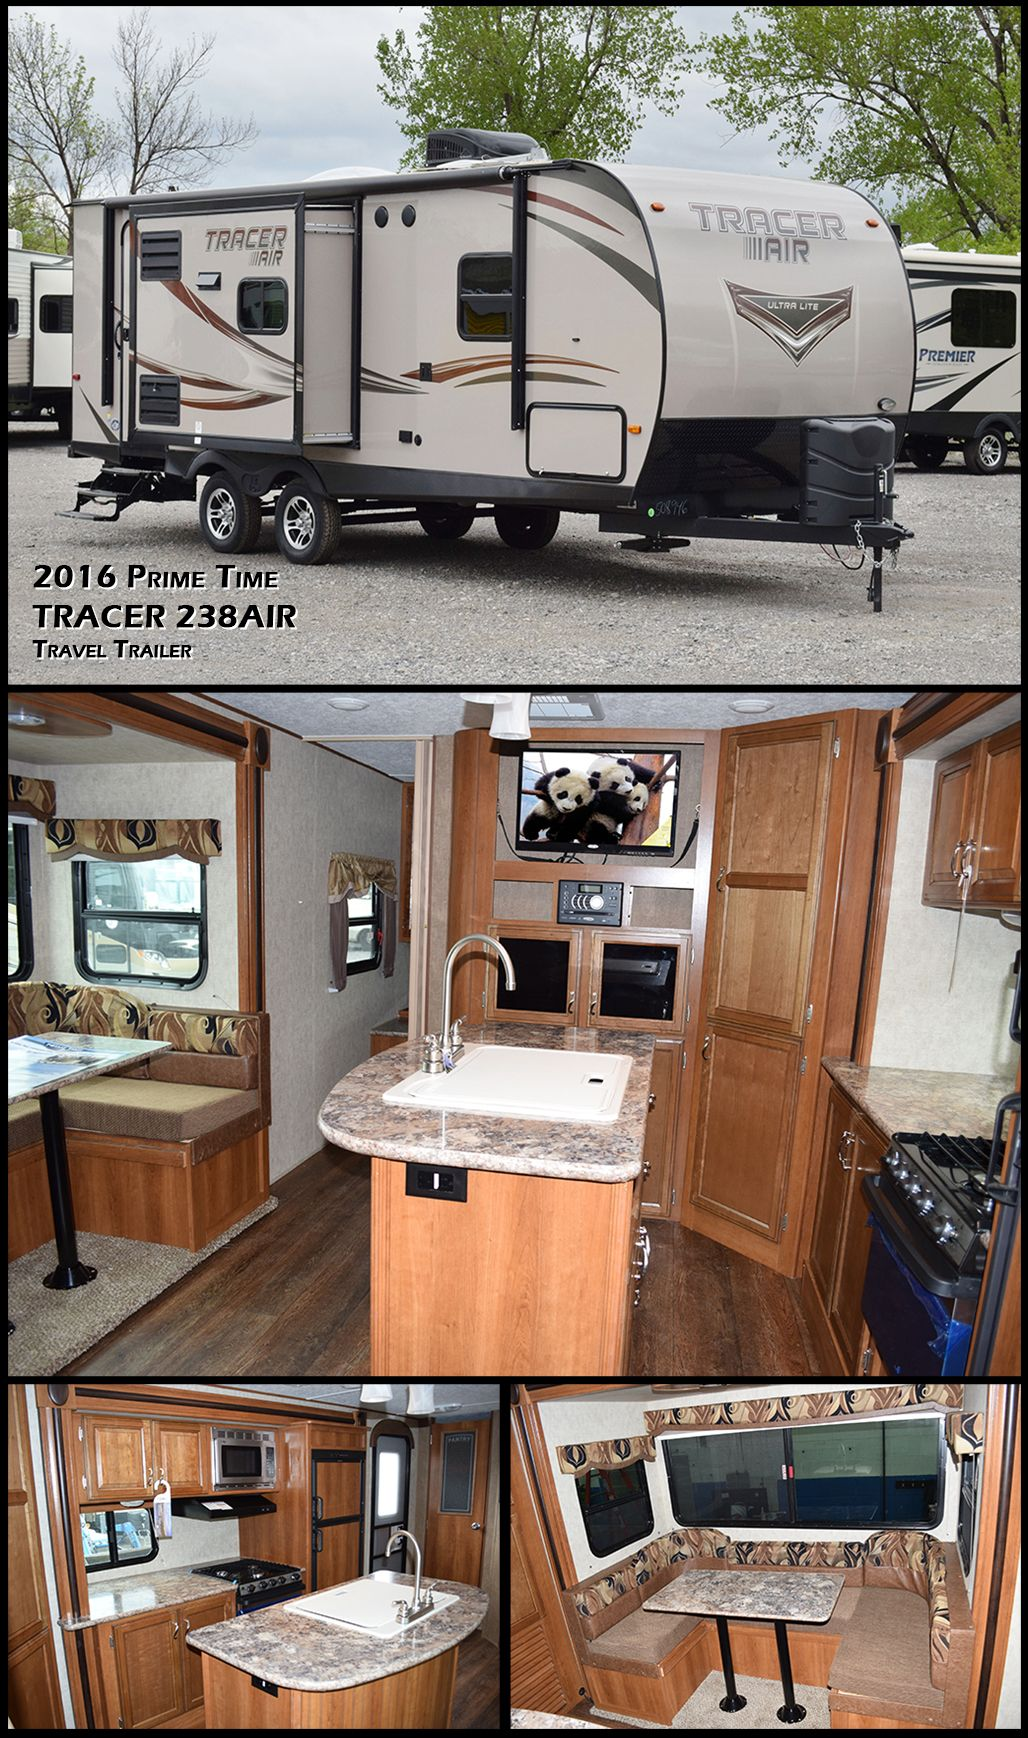 The 2016 Tracer 238AIR travel trailer by Prime Time manufacturing ...